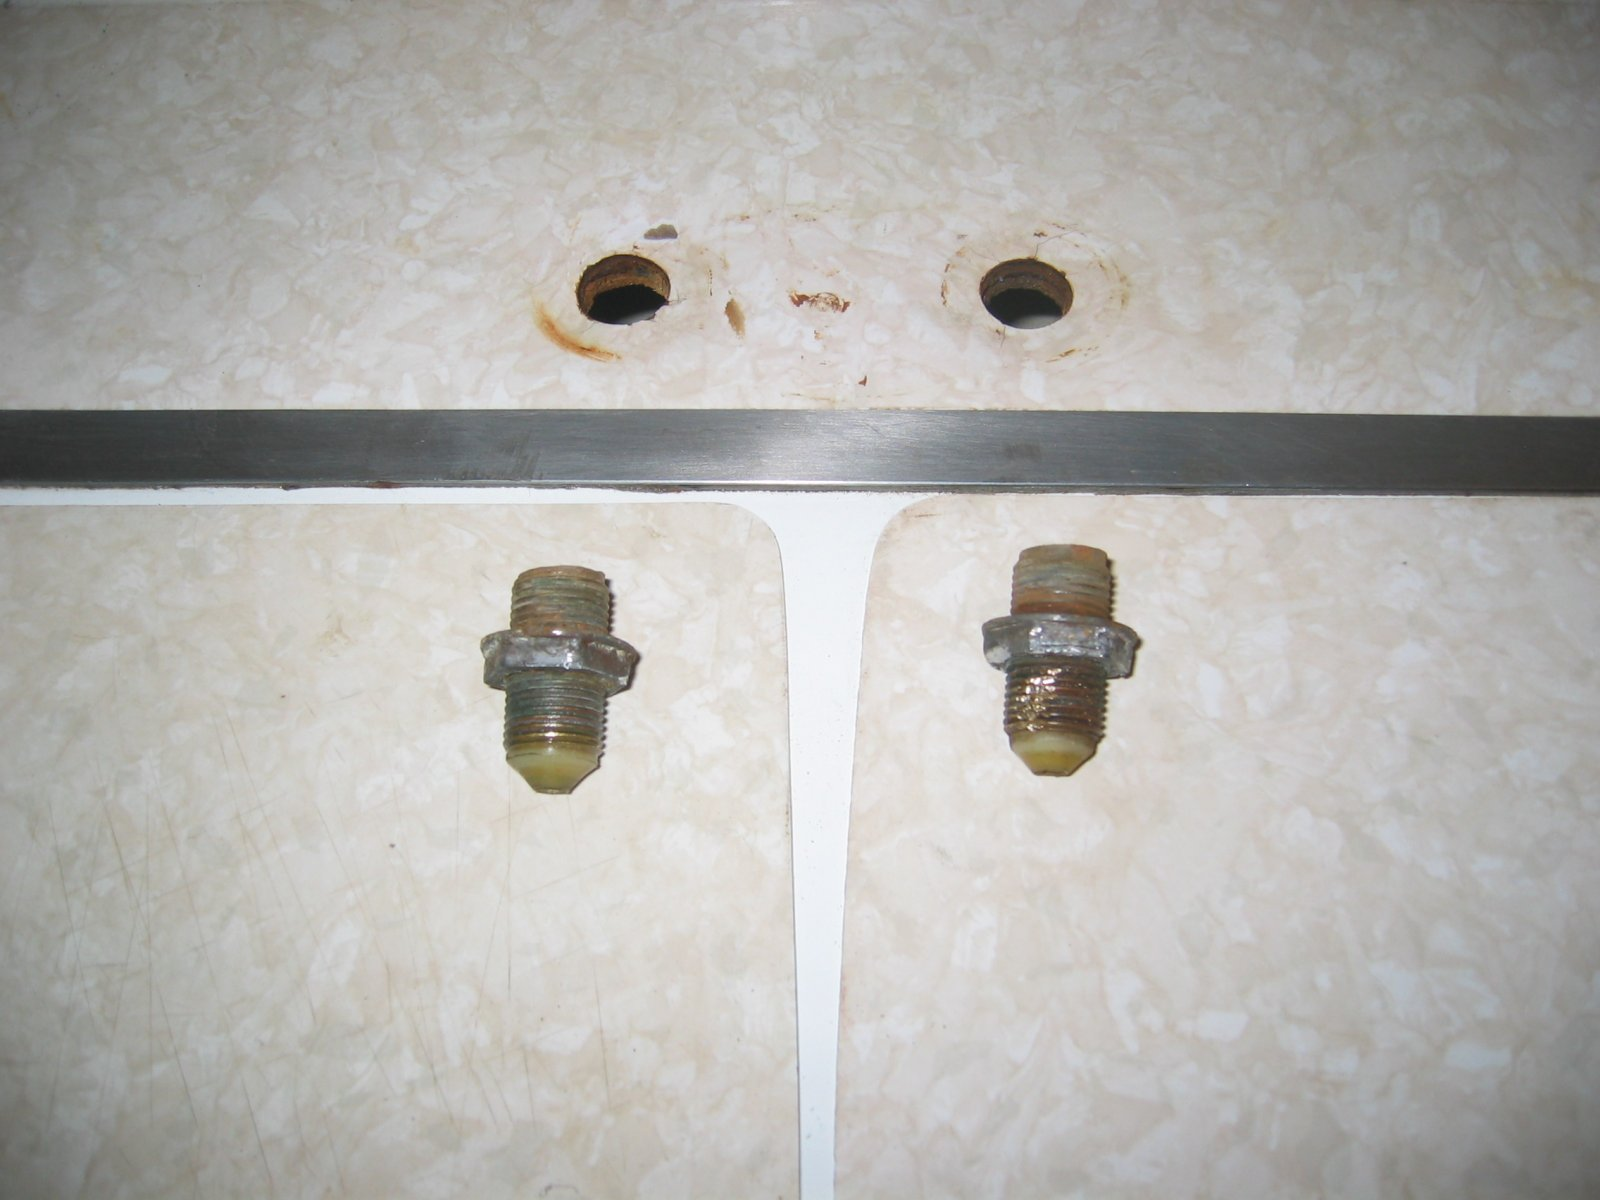 Click image for larger version  Name:1401 Galley Faucet Removed.jpg Views:61 Size:171.1 KB ID:203039